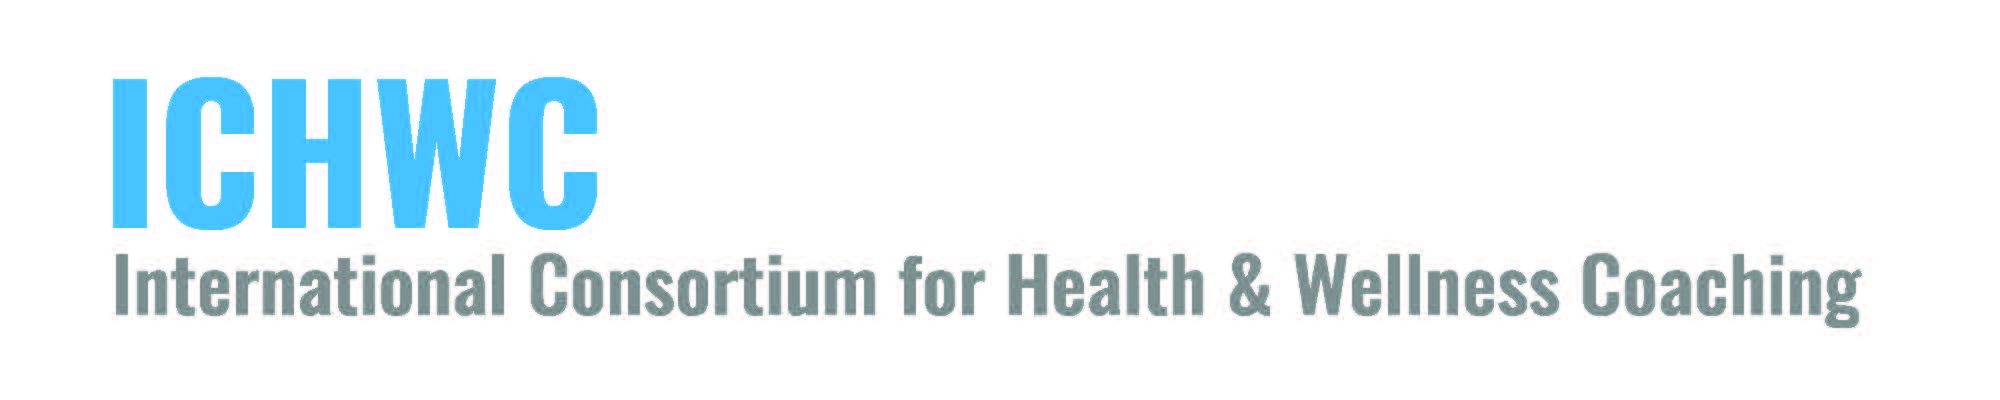 International Consortium for Health and Wellness Coaching (ICHWC)